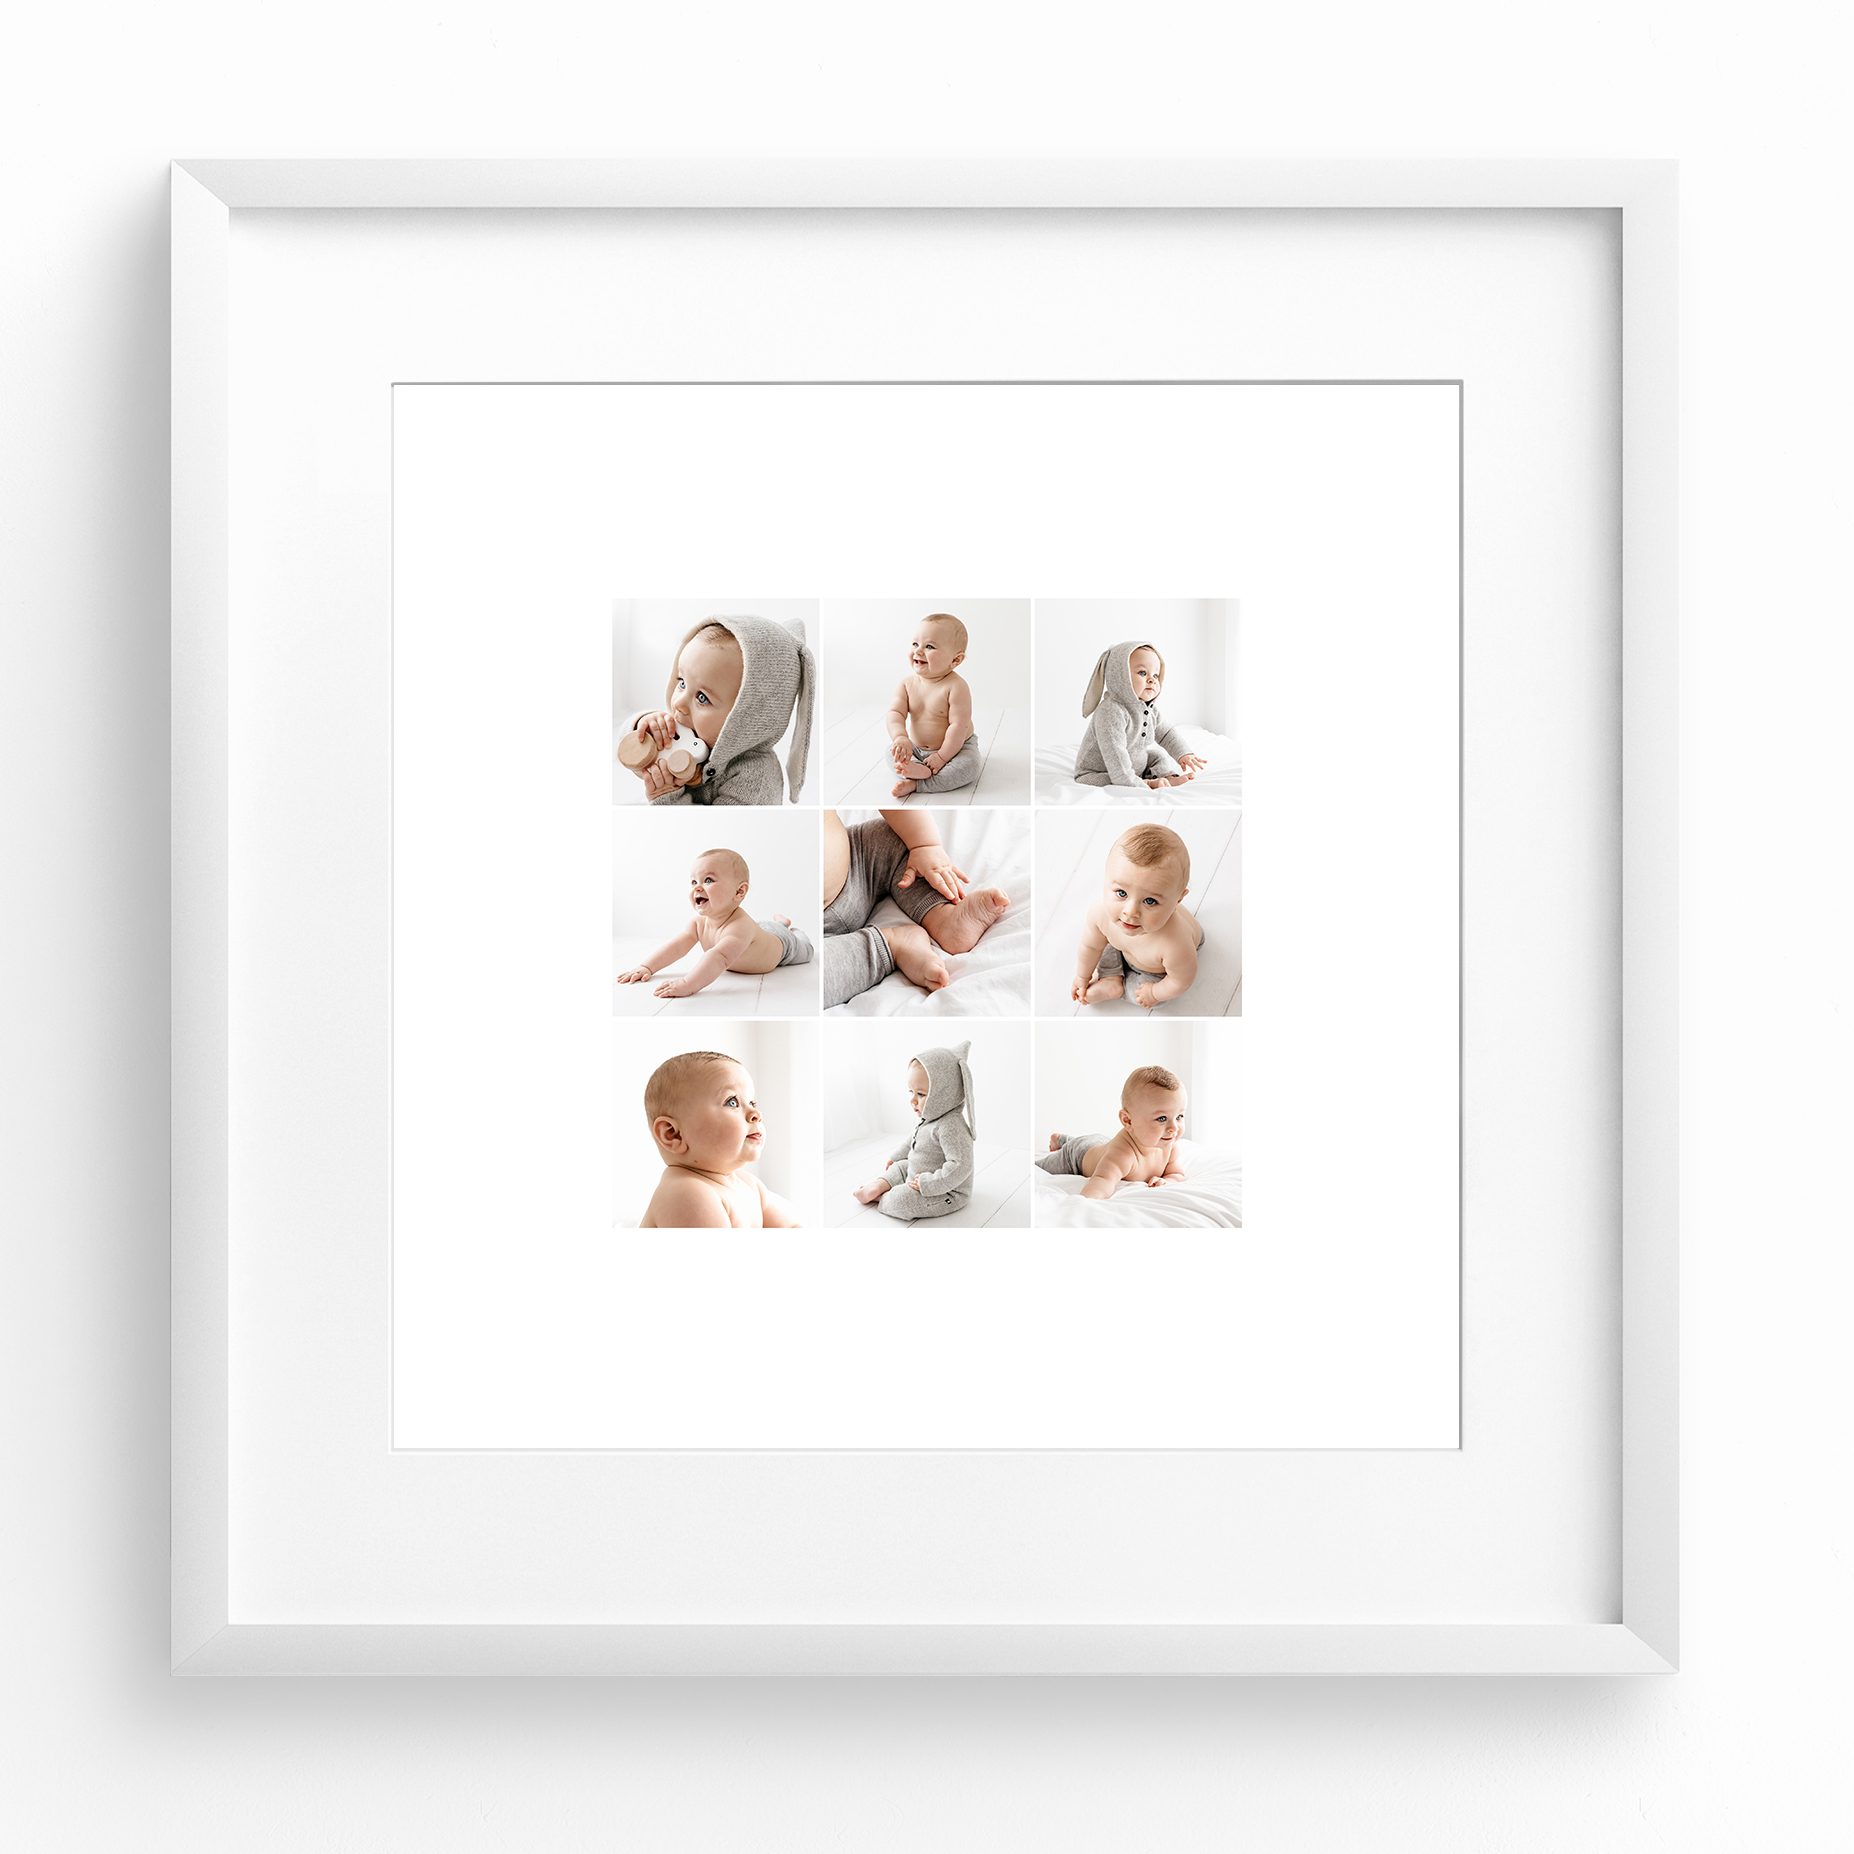 Baby Photography Horsham Sussex